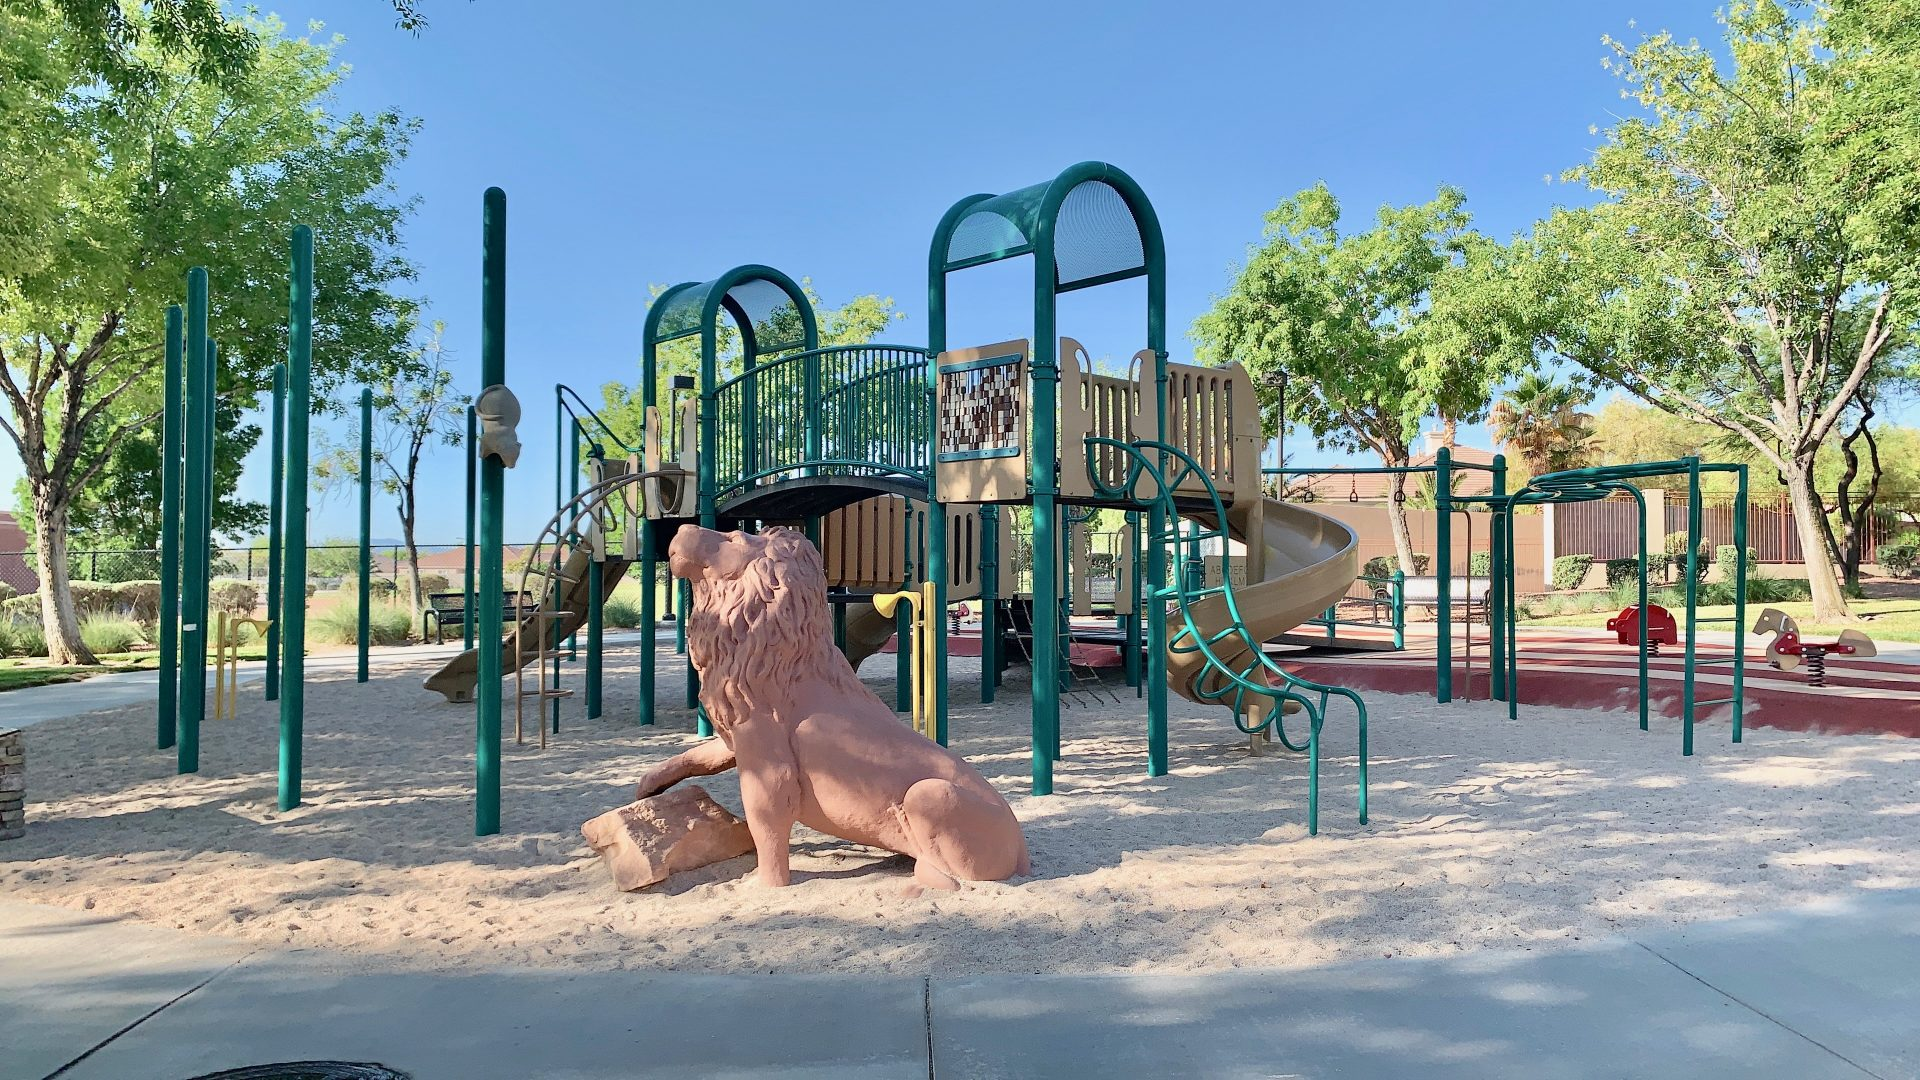 The Willows Park